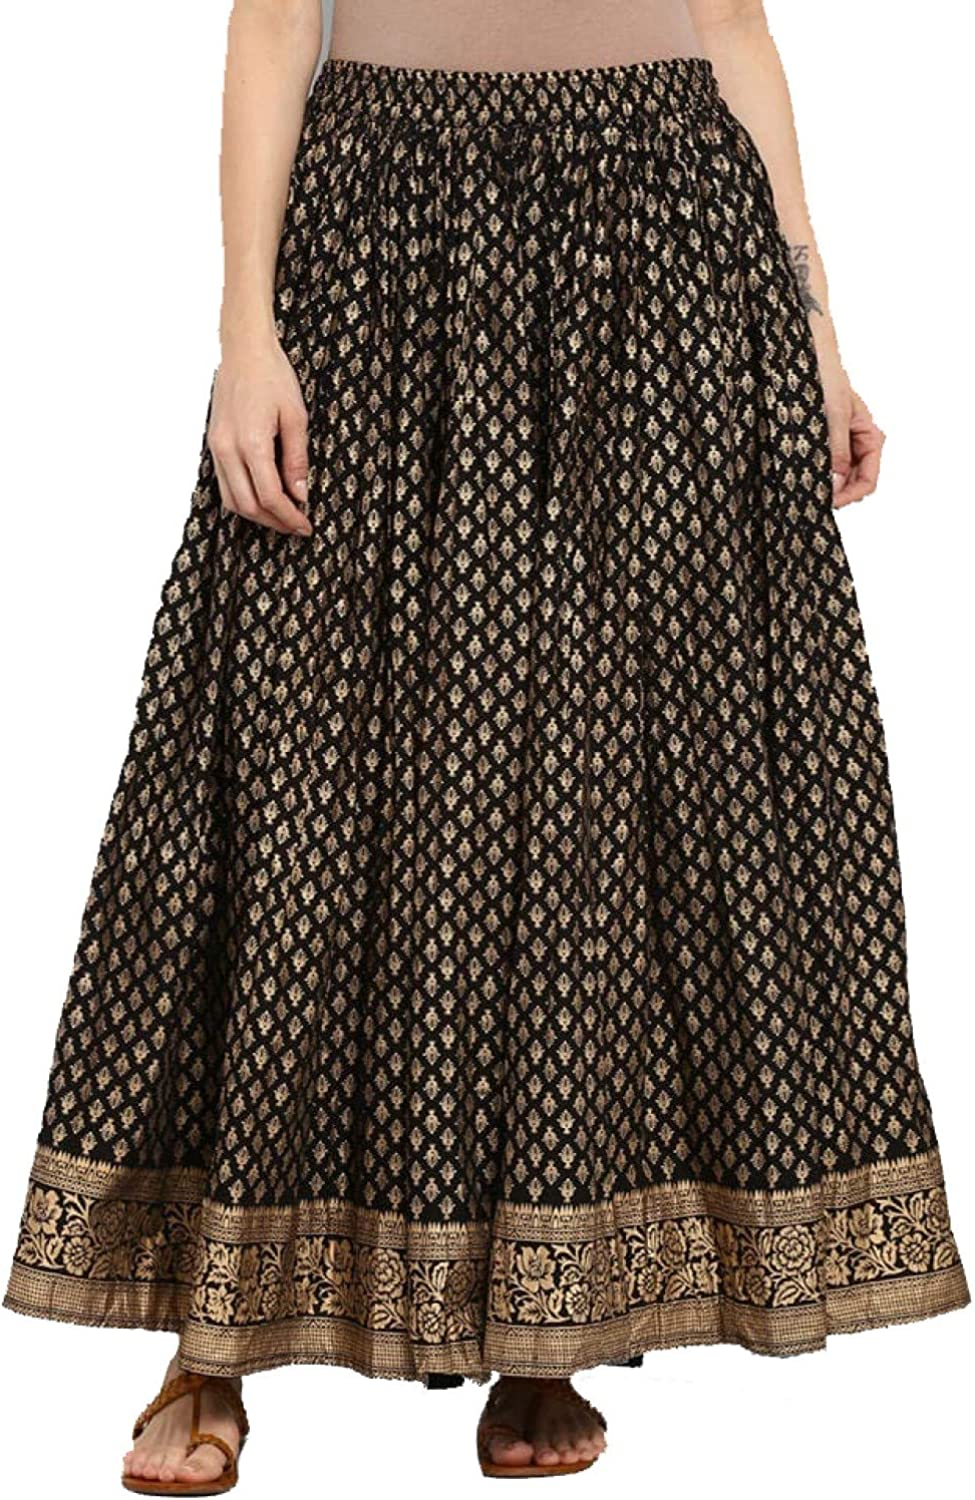 Skirt for Women Wide Leg Elastic Waist Loose Comfy Black and Golden Printed Maxi Flared Yoga